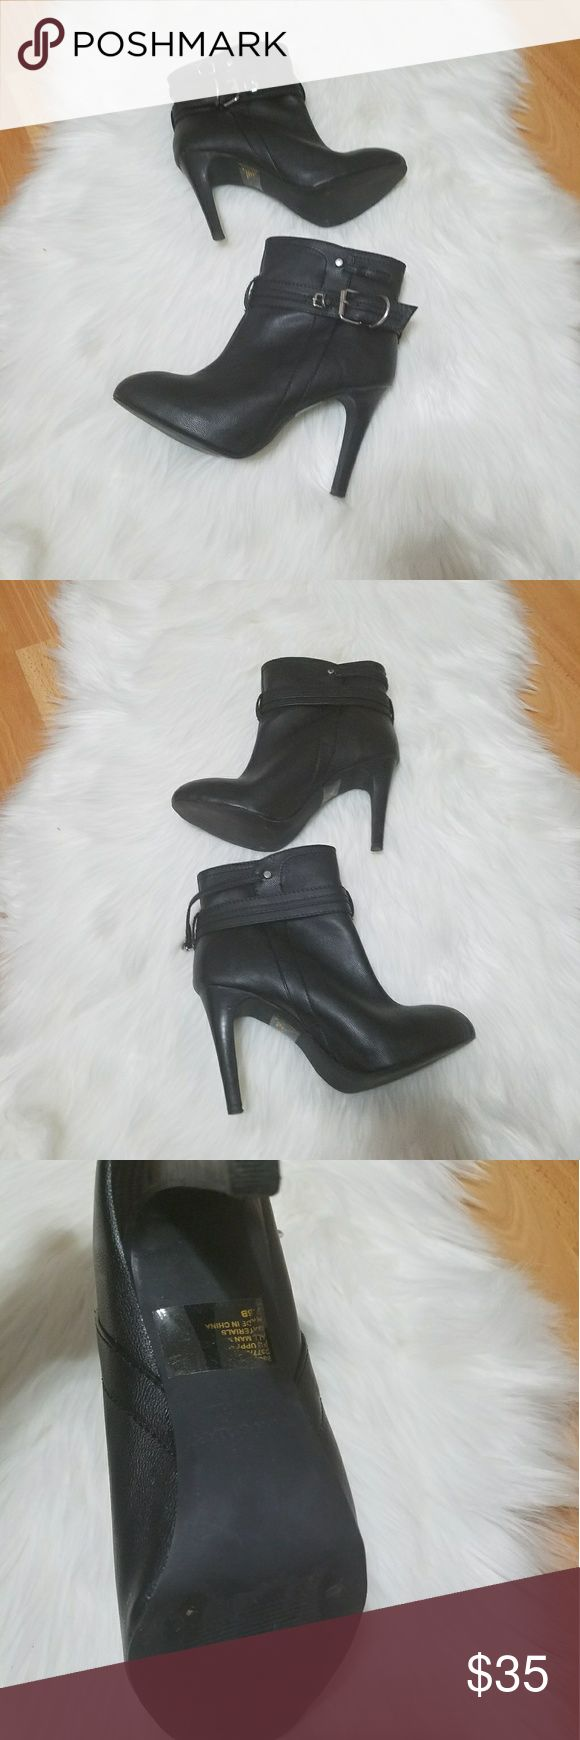 "Colin Stuart ankle Booties Size 7.5. Great condition. Has some sole wear. Heel height 4"". Colin Stuart Shoes Ankle Boots & Booties"